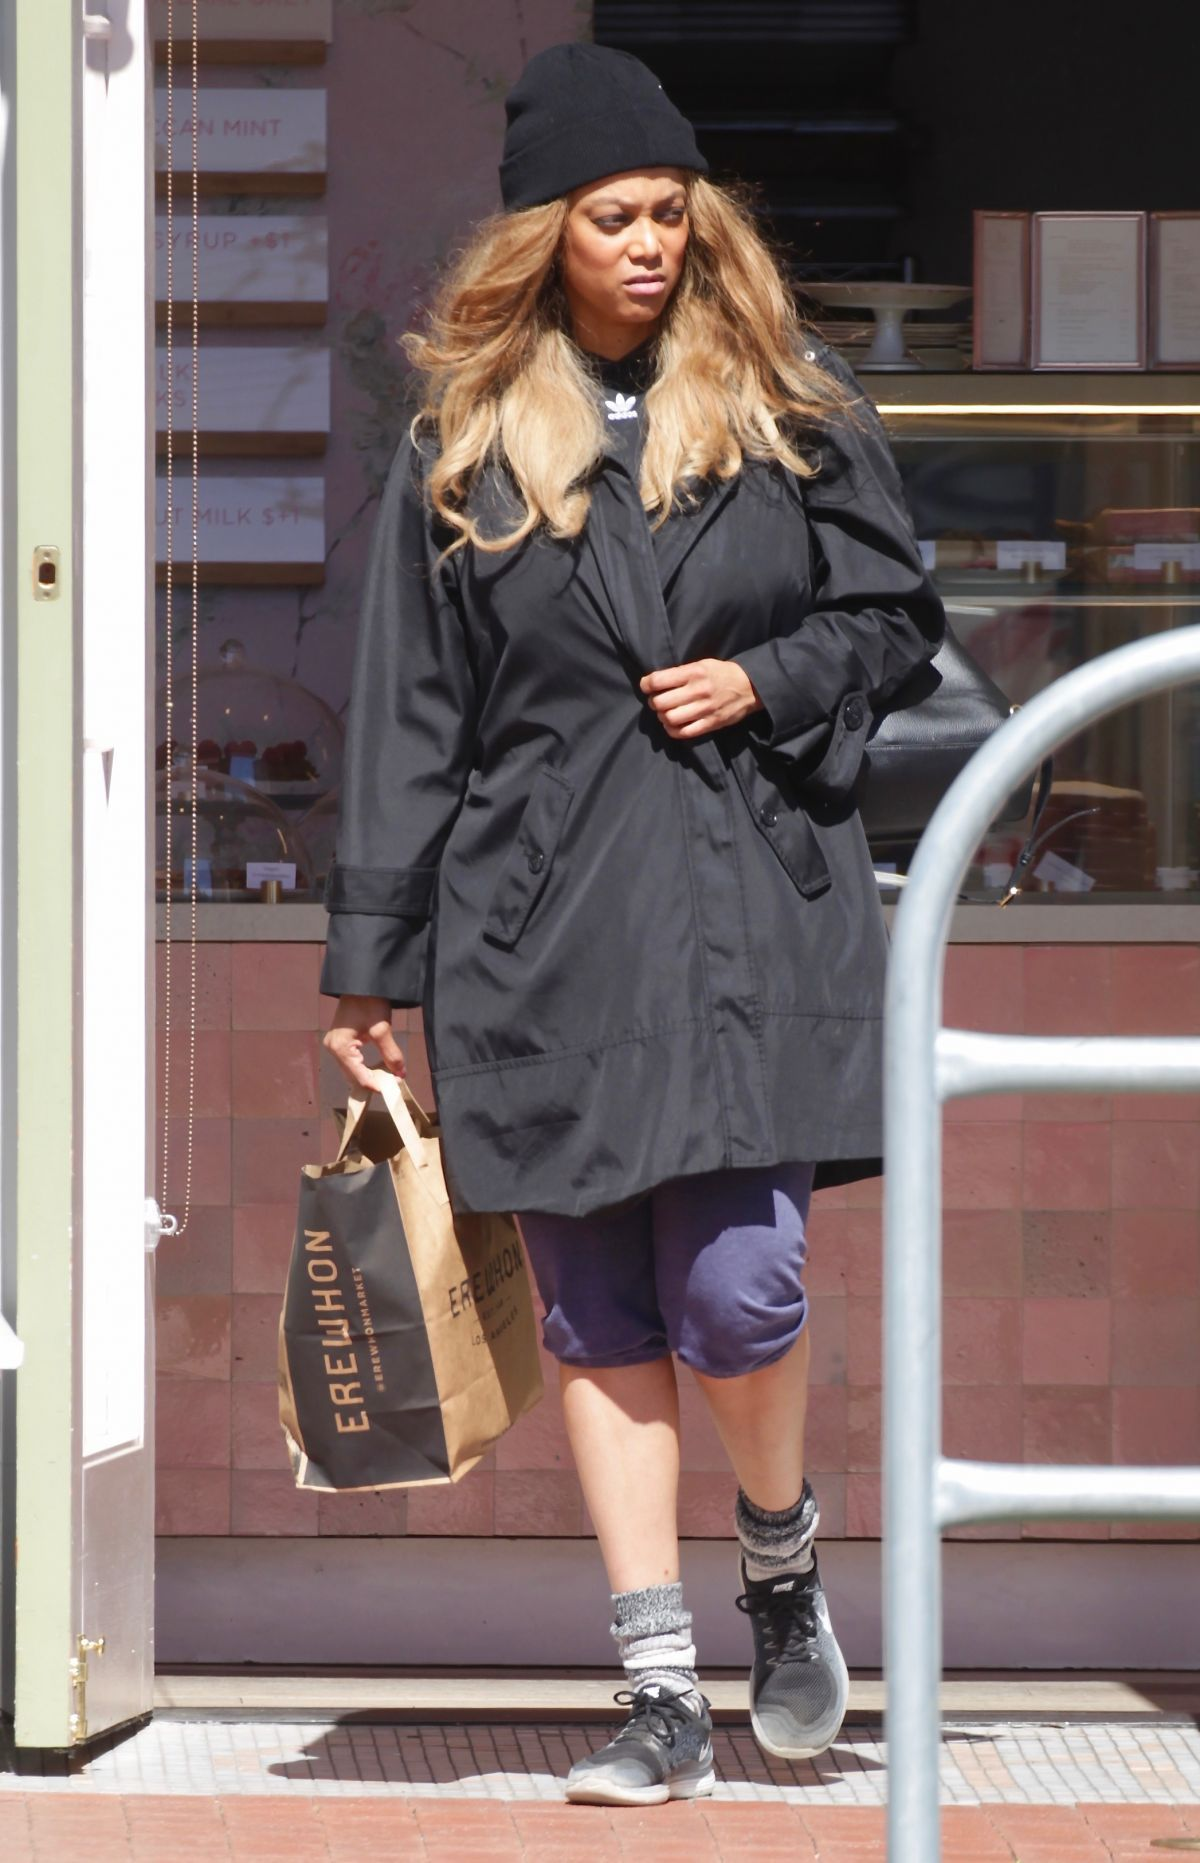 Tyra Banks Out Sopping In Los Angeles 03 25 2020 In 2020 Tyra Banks Tyra Hollywood Celebrities